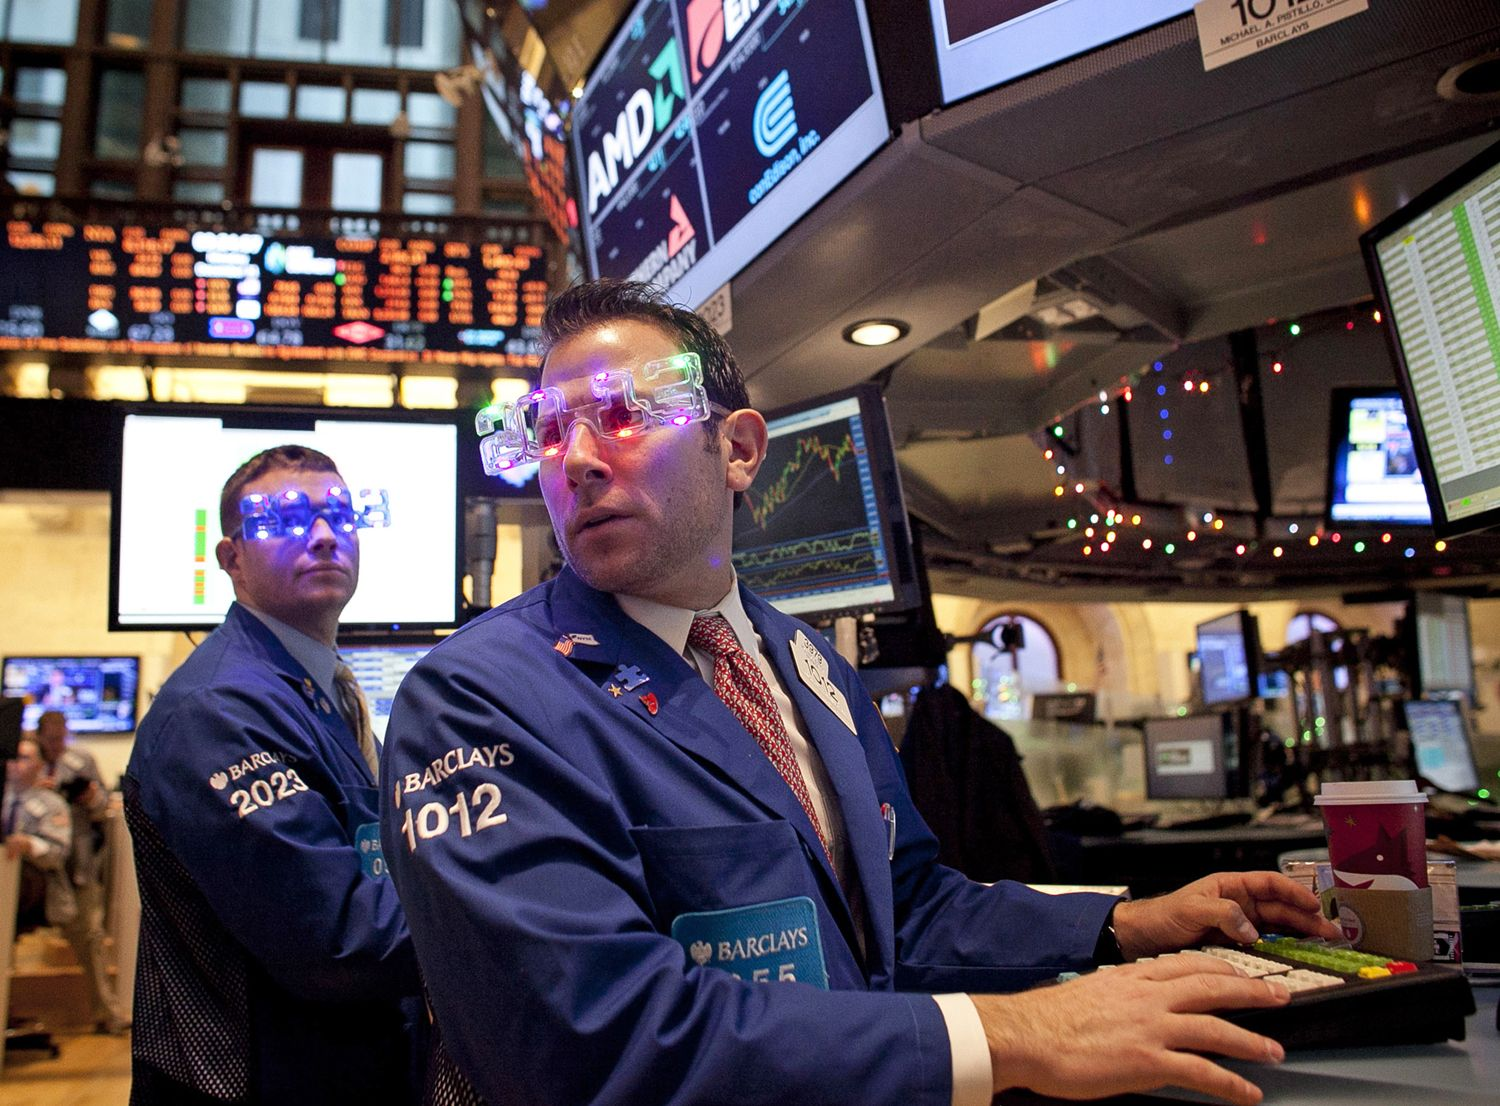 Rose-colored glasses? Maybe, but Wall Street is still nervous about fiscal cliff talks (Photo: Allison Joyce / Getty Images)